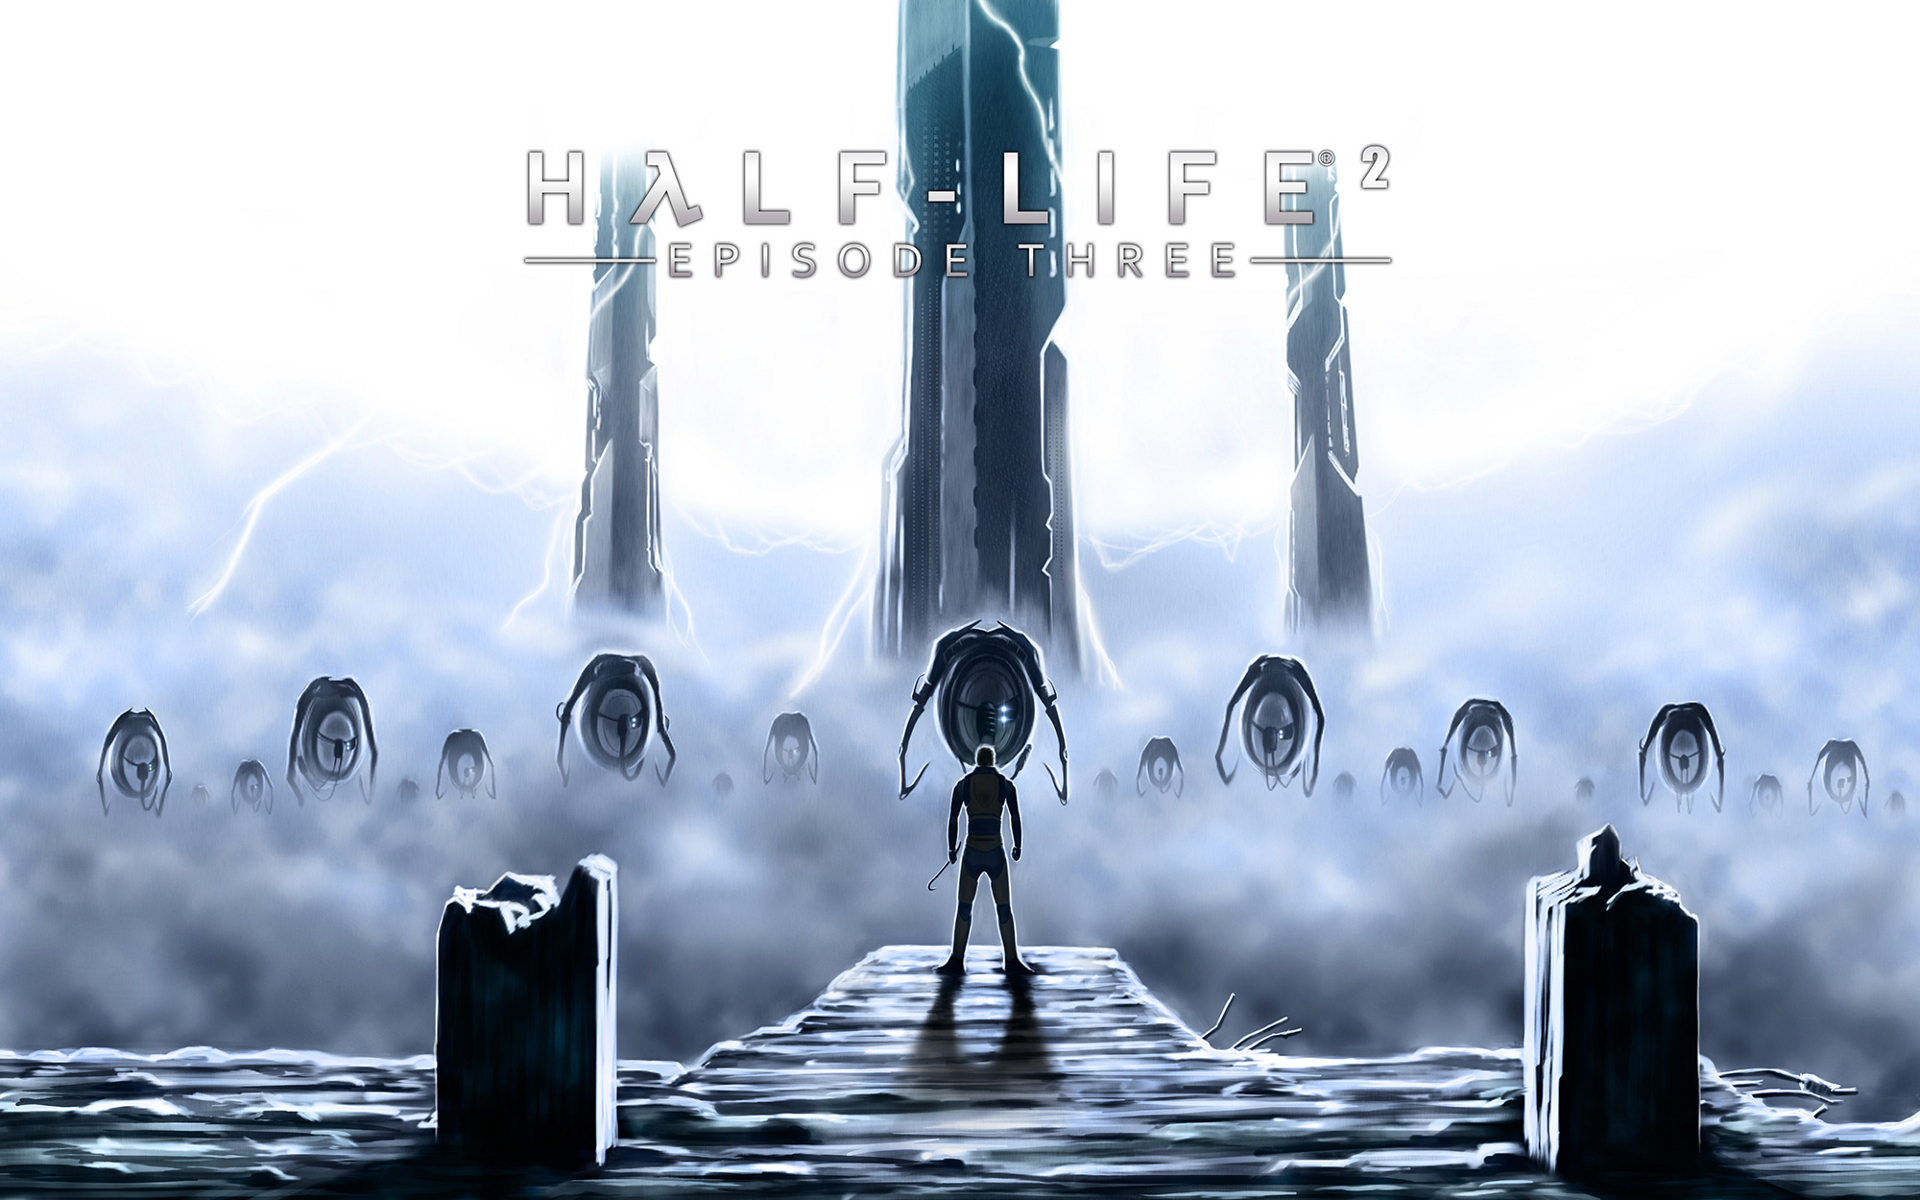 Half Life 2 Combine Wallpaper: Half-Life 2 Wallpapers High Quality